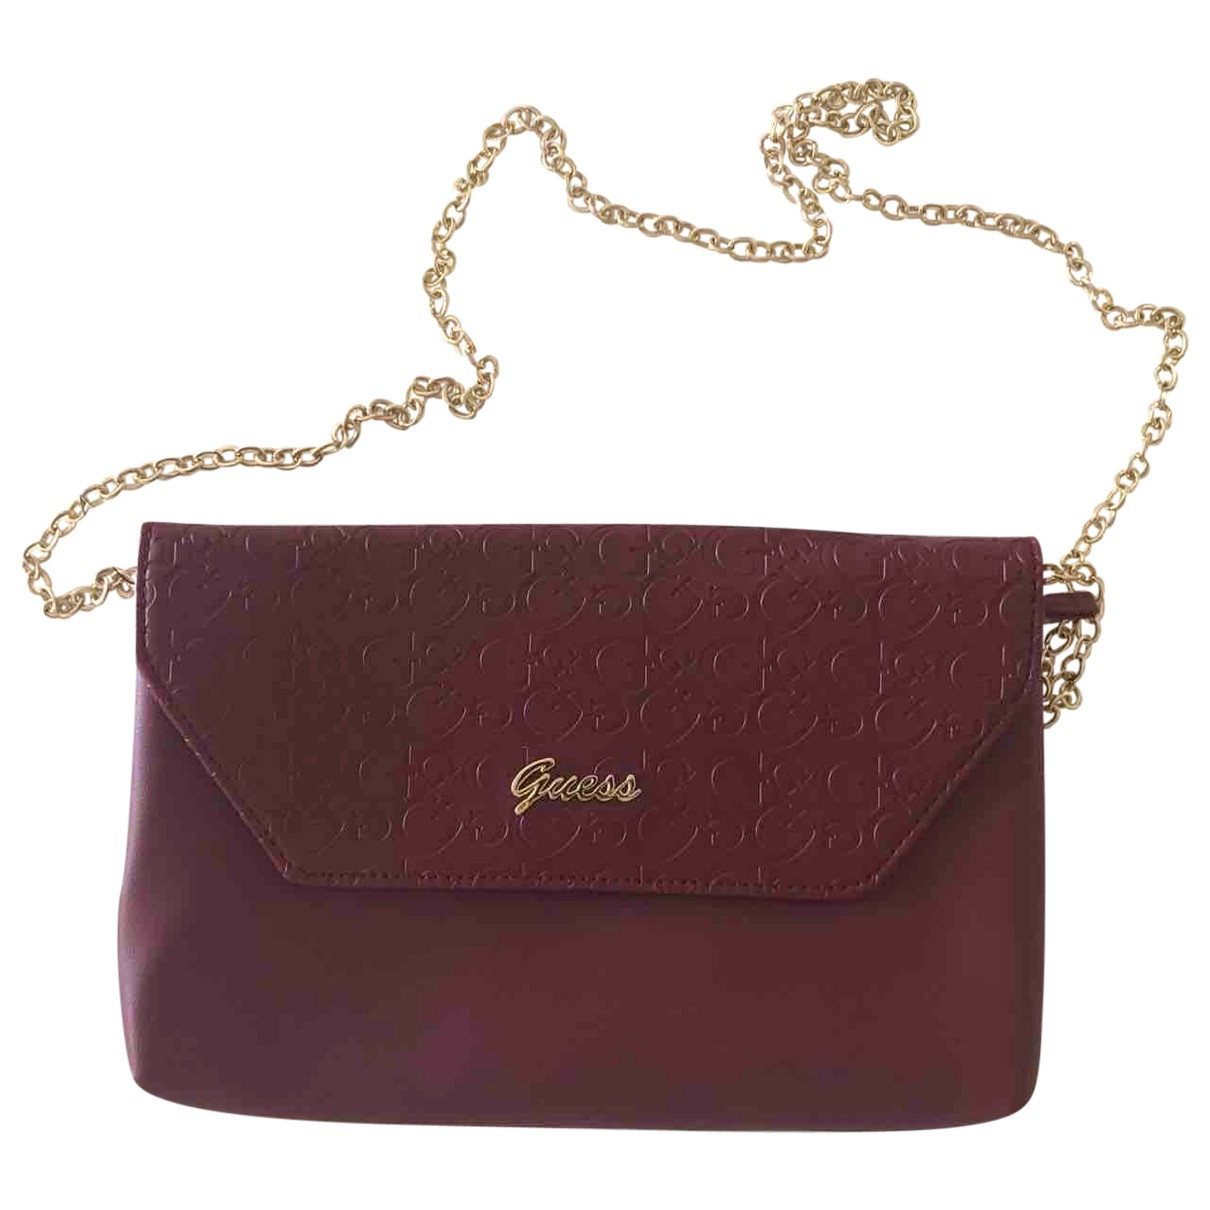 Guess \N Burgundy Leather Clutch bag for Women \N